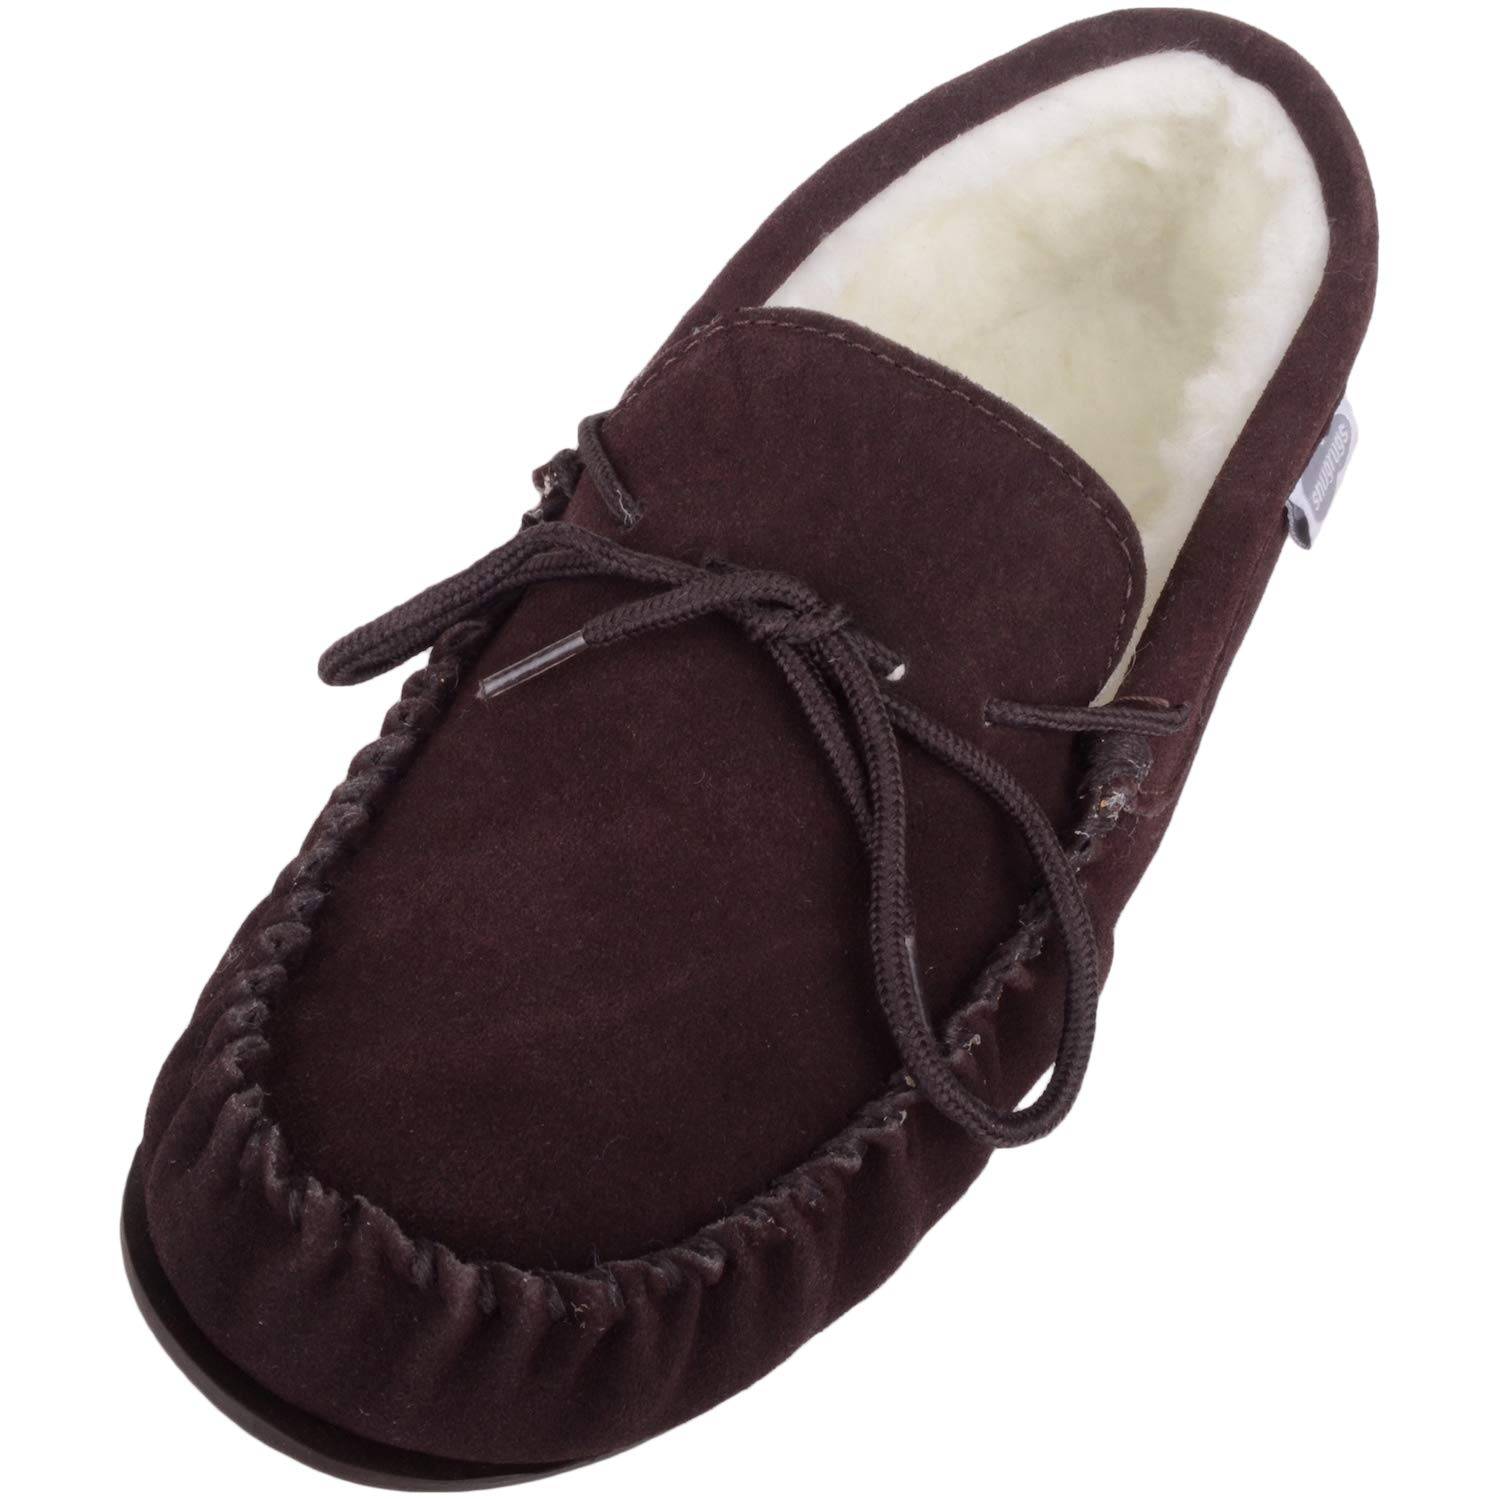 SNUGRUGS Wool Lined Suede Moccasin with Rubber Sole, Chaussons Homme ADMRS